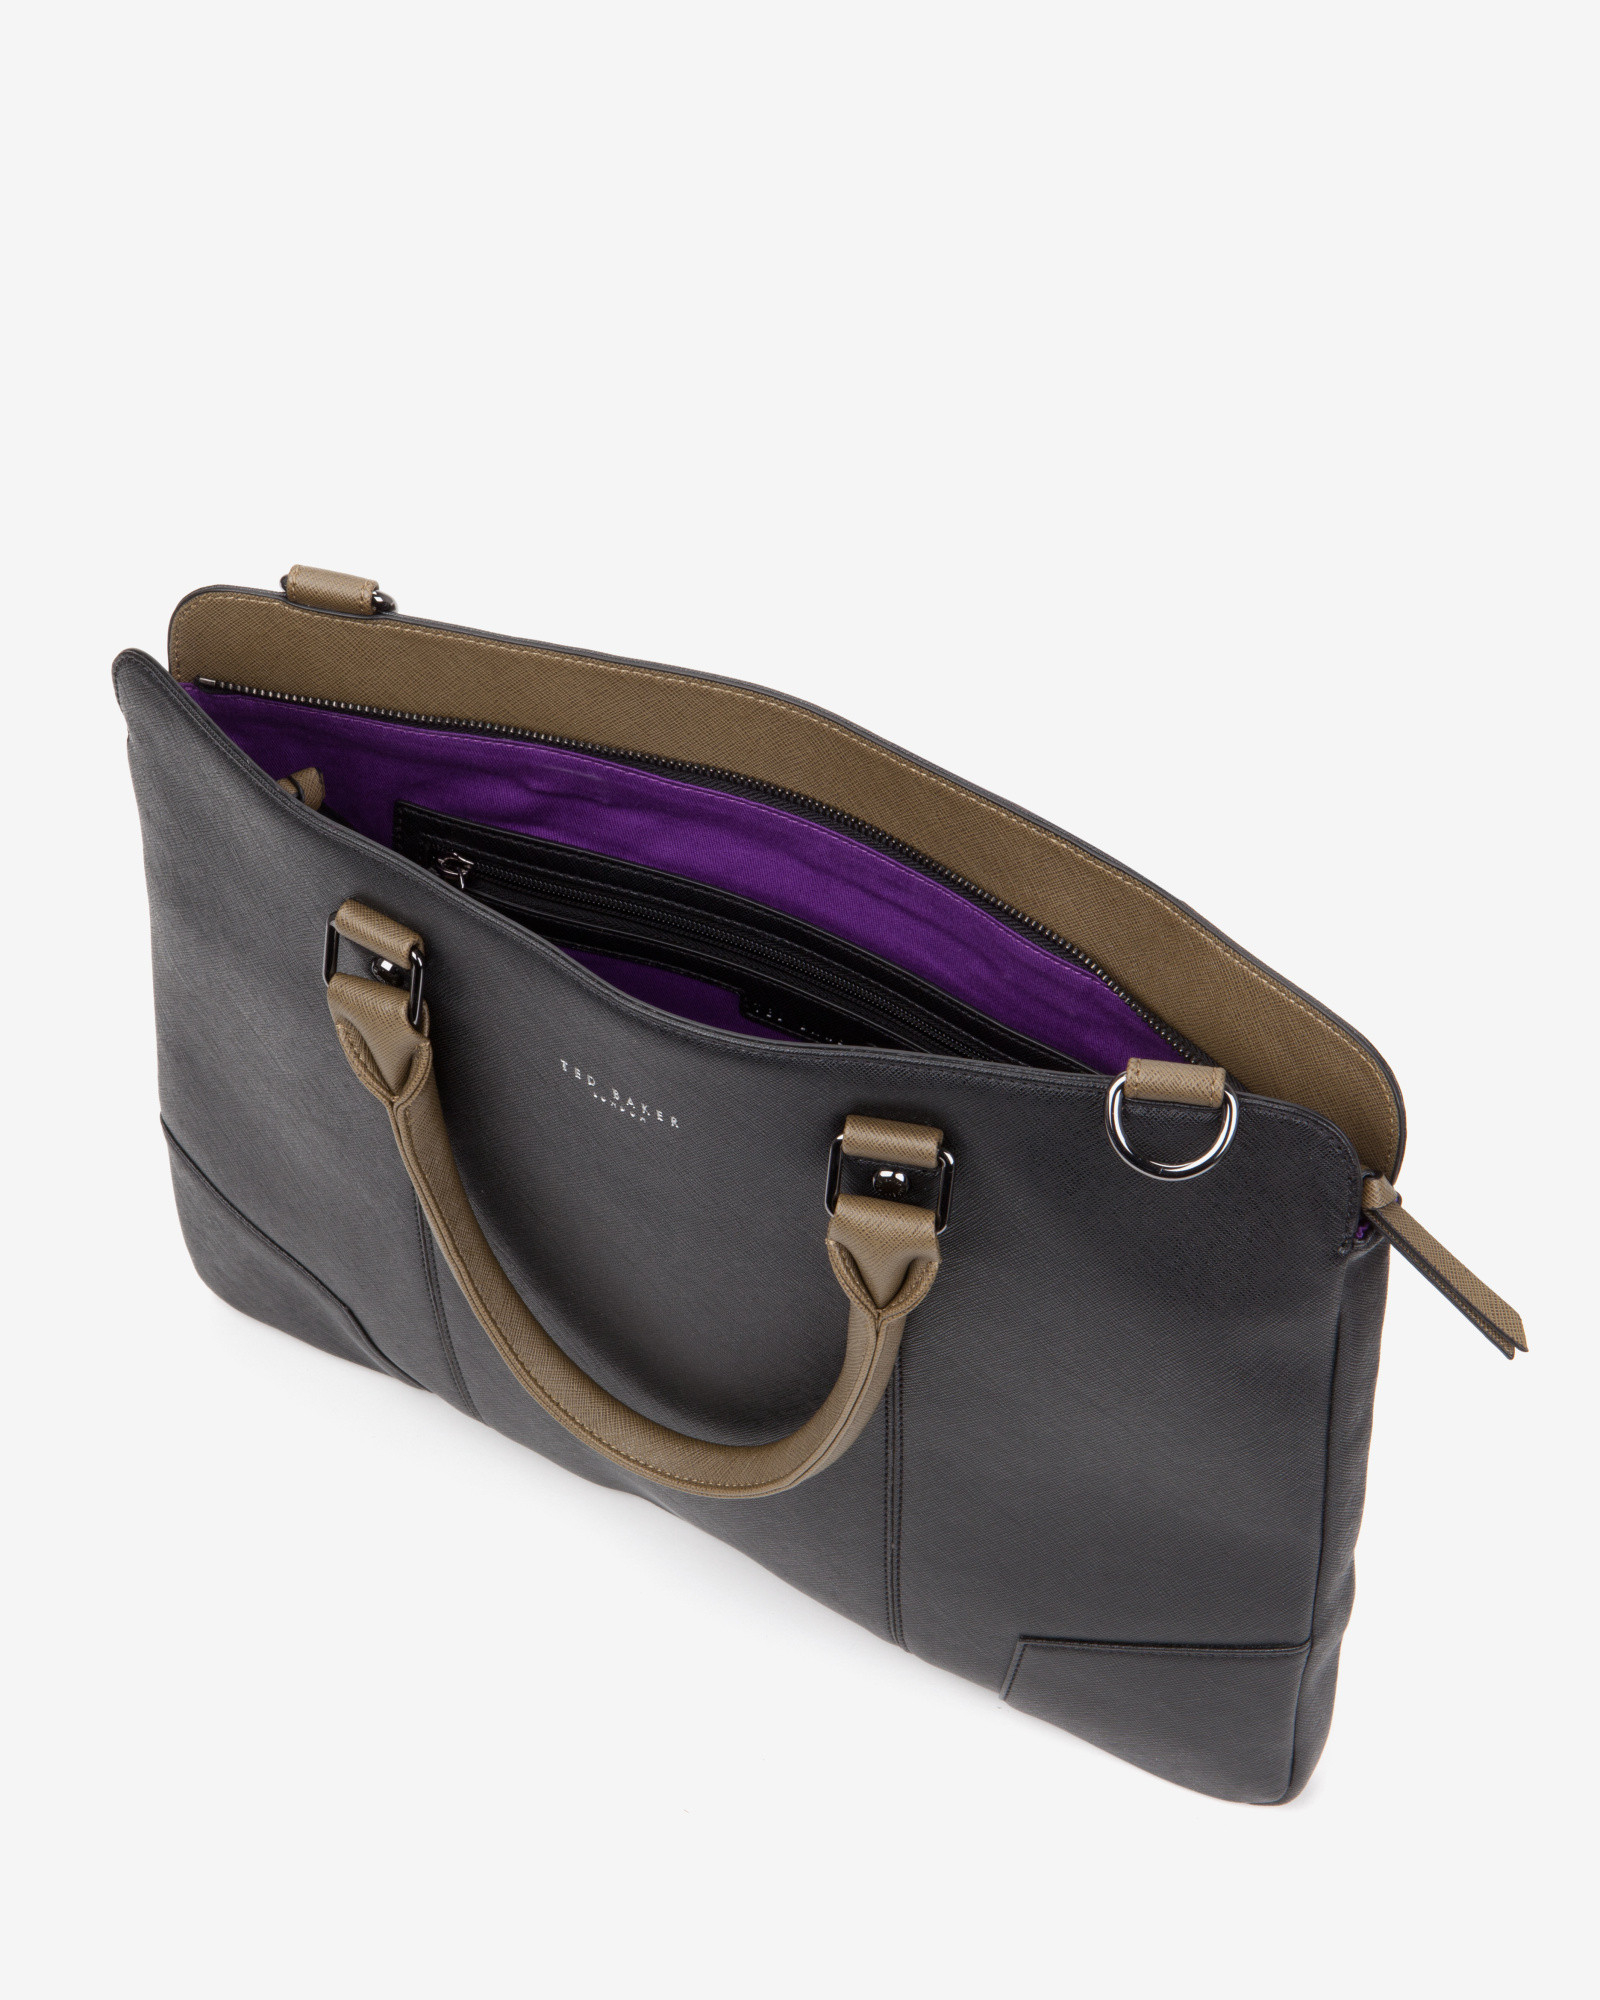 7bf9c15eb6fdc Lyst - Ted Baker Contrast Handle Document Bag in Black for Men